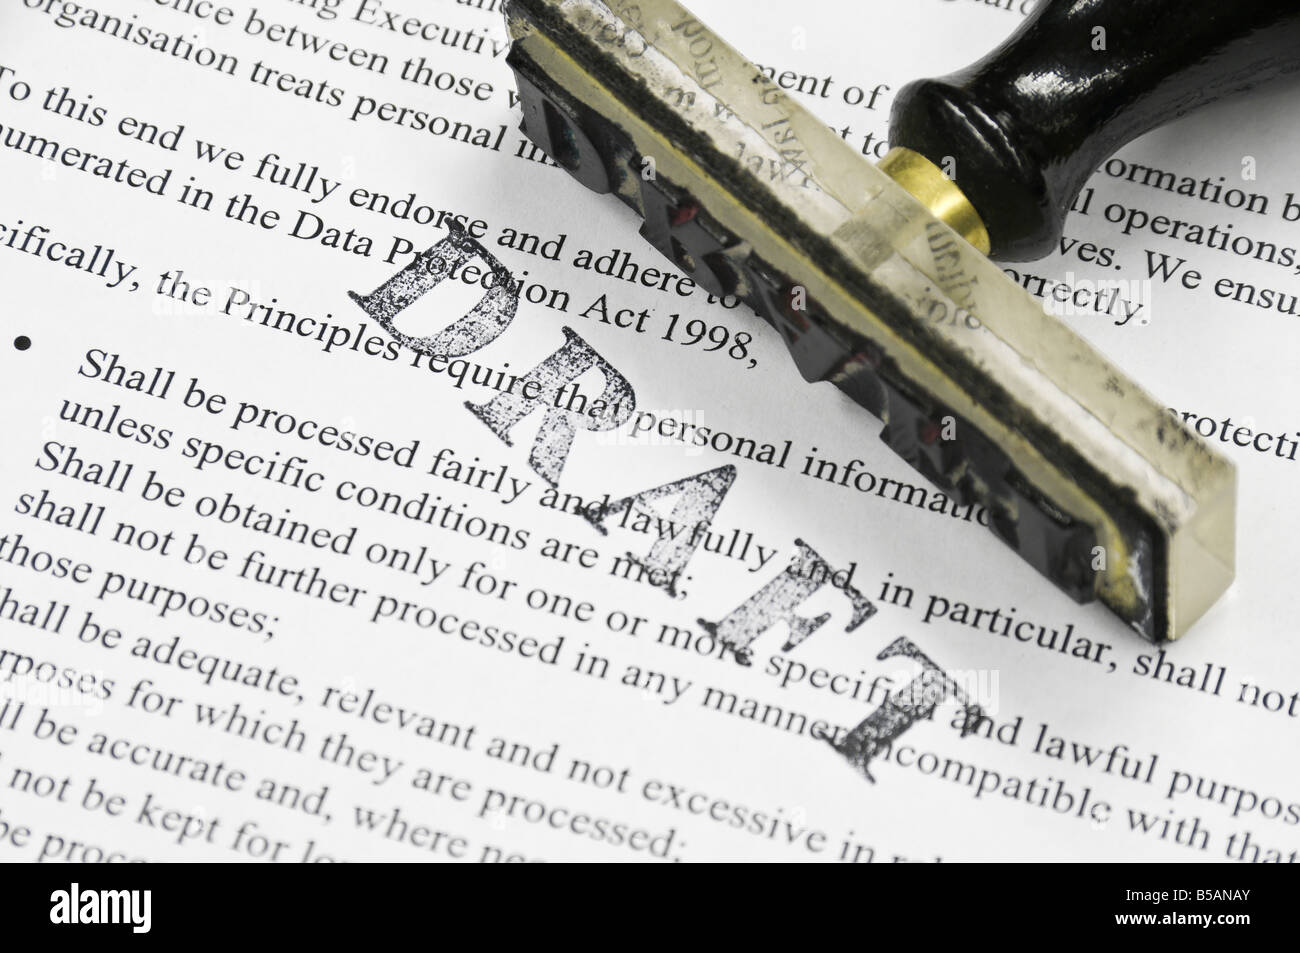 Draft stamp on a page containing Data Protection policy - Stock Image